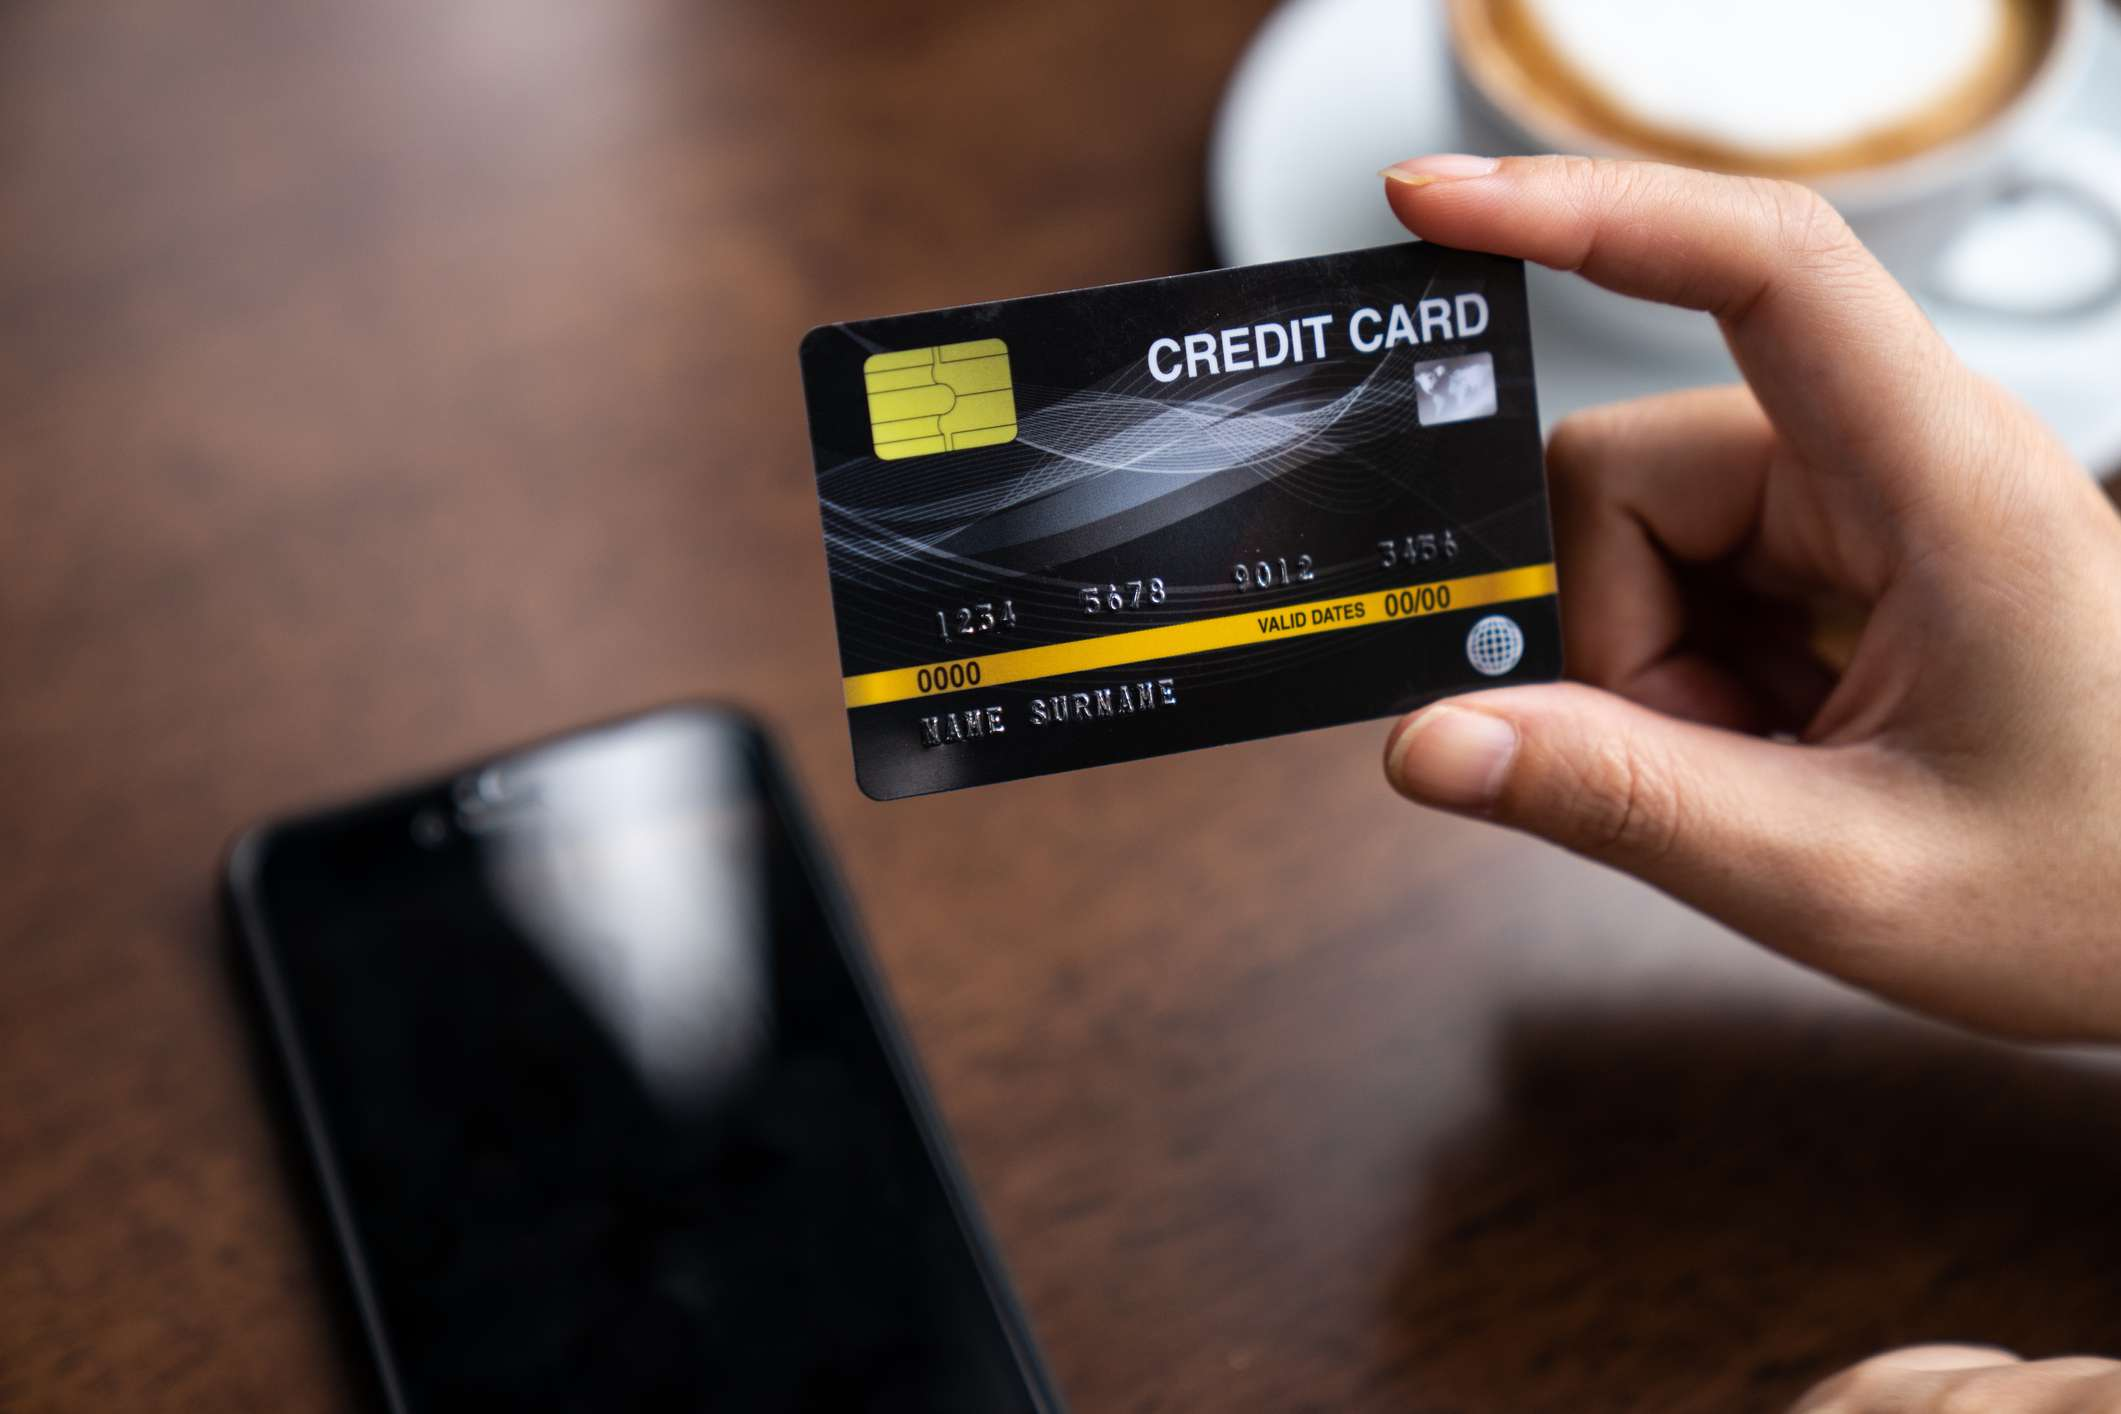 Credit card concept, Credit card payment